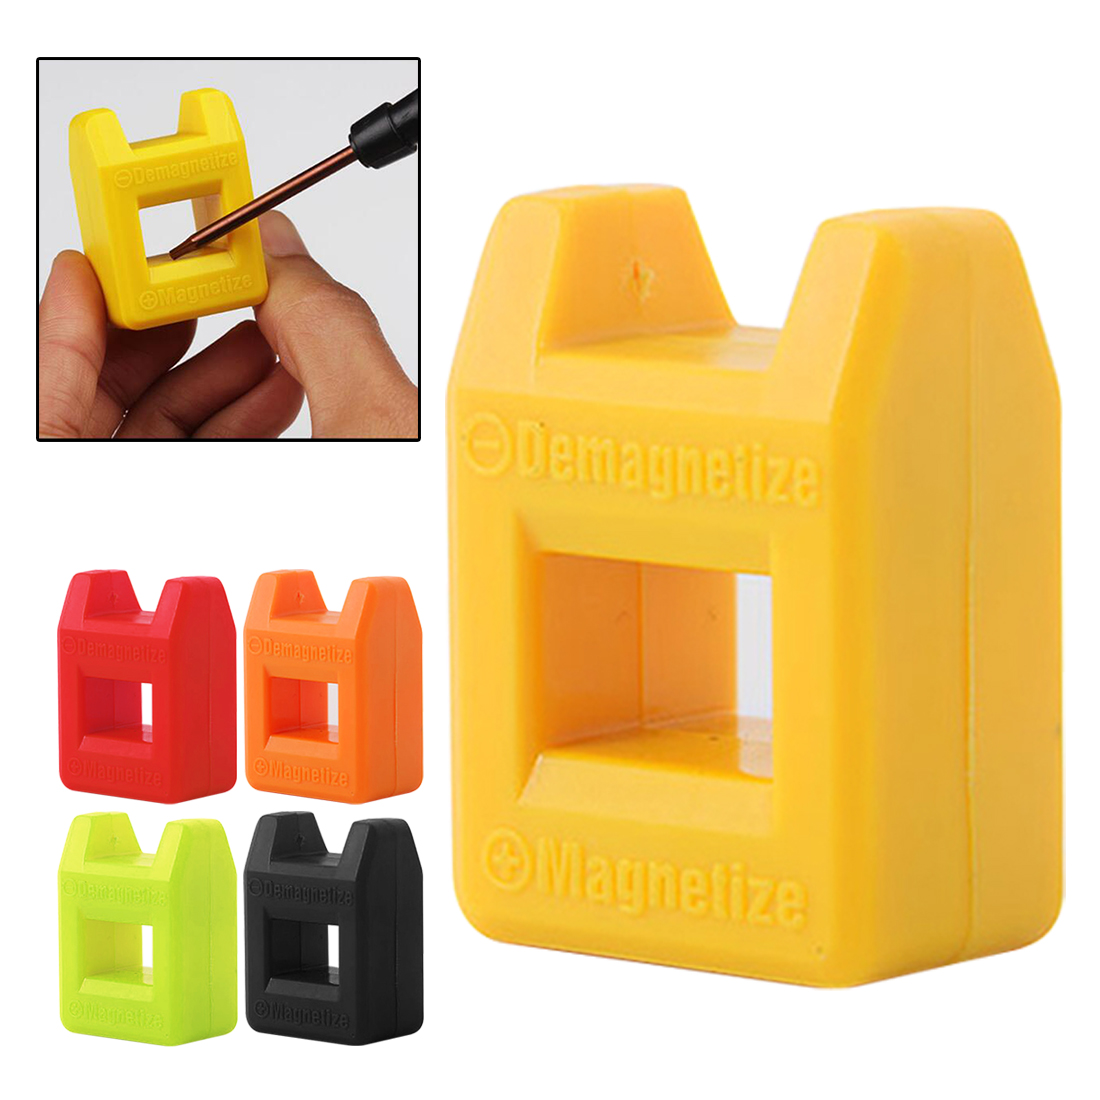 New 2 In 1 Magnetizer Demagnetizer Tool Screwdriver Magnetic High Quality Colour Send Random